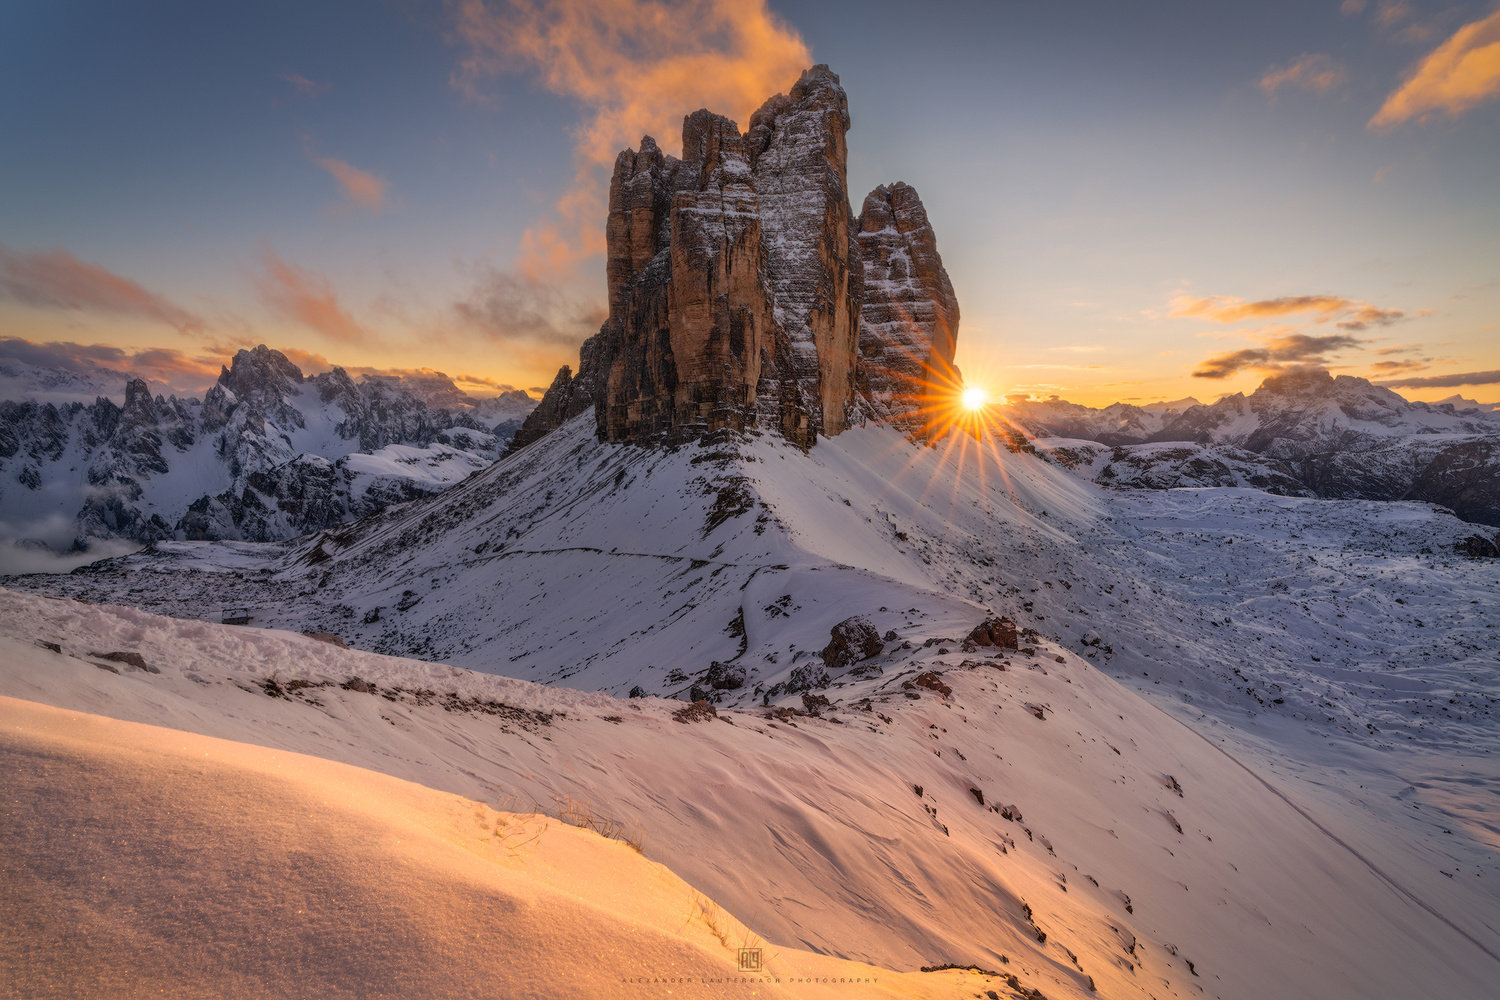 Snowy sunset at Tre Cime by Alexander Lauterbach